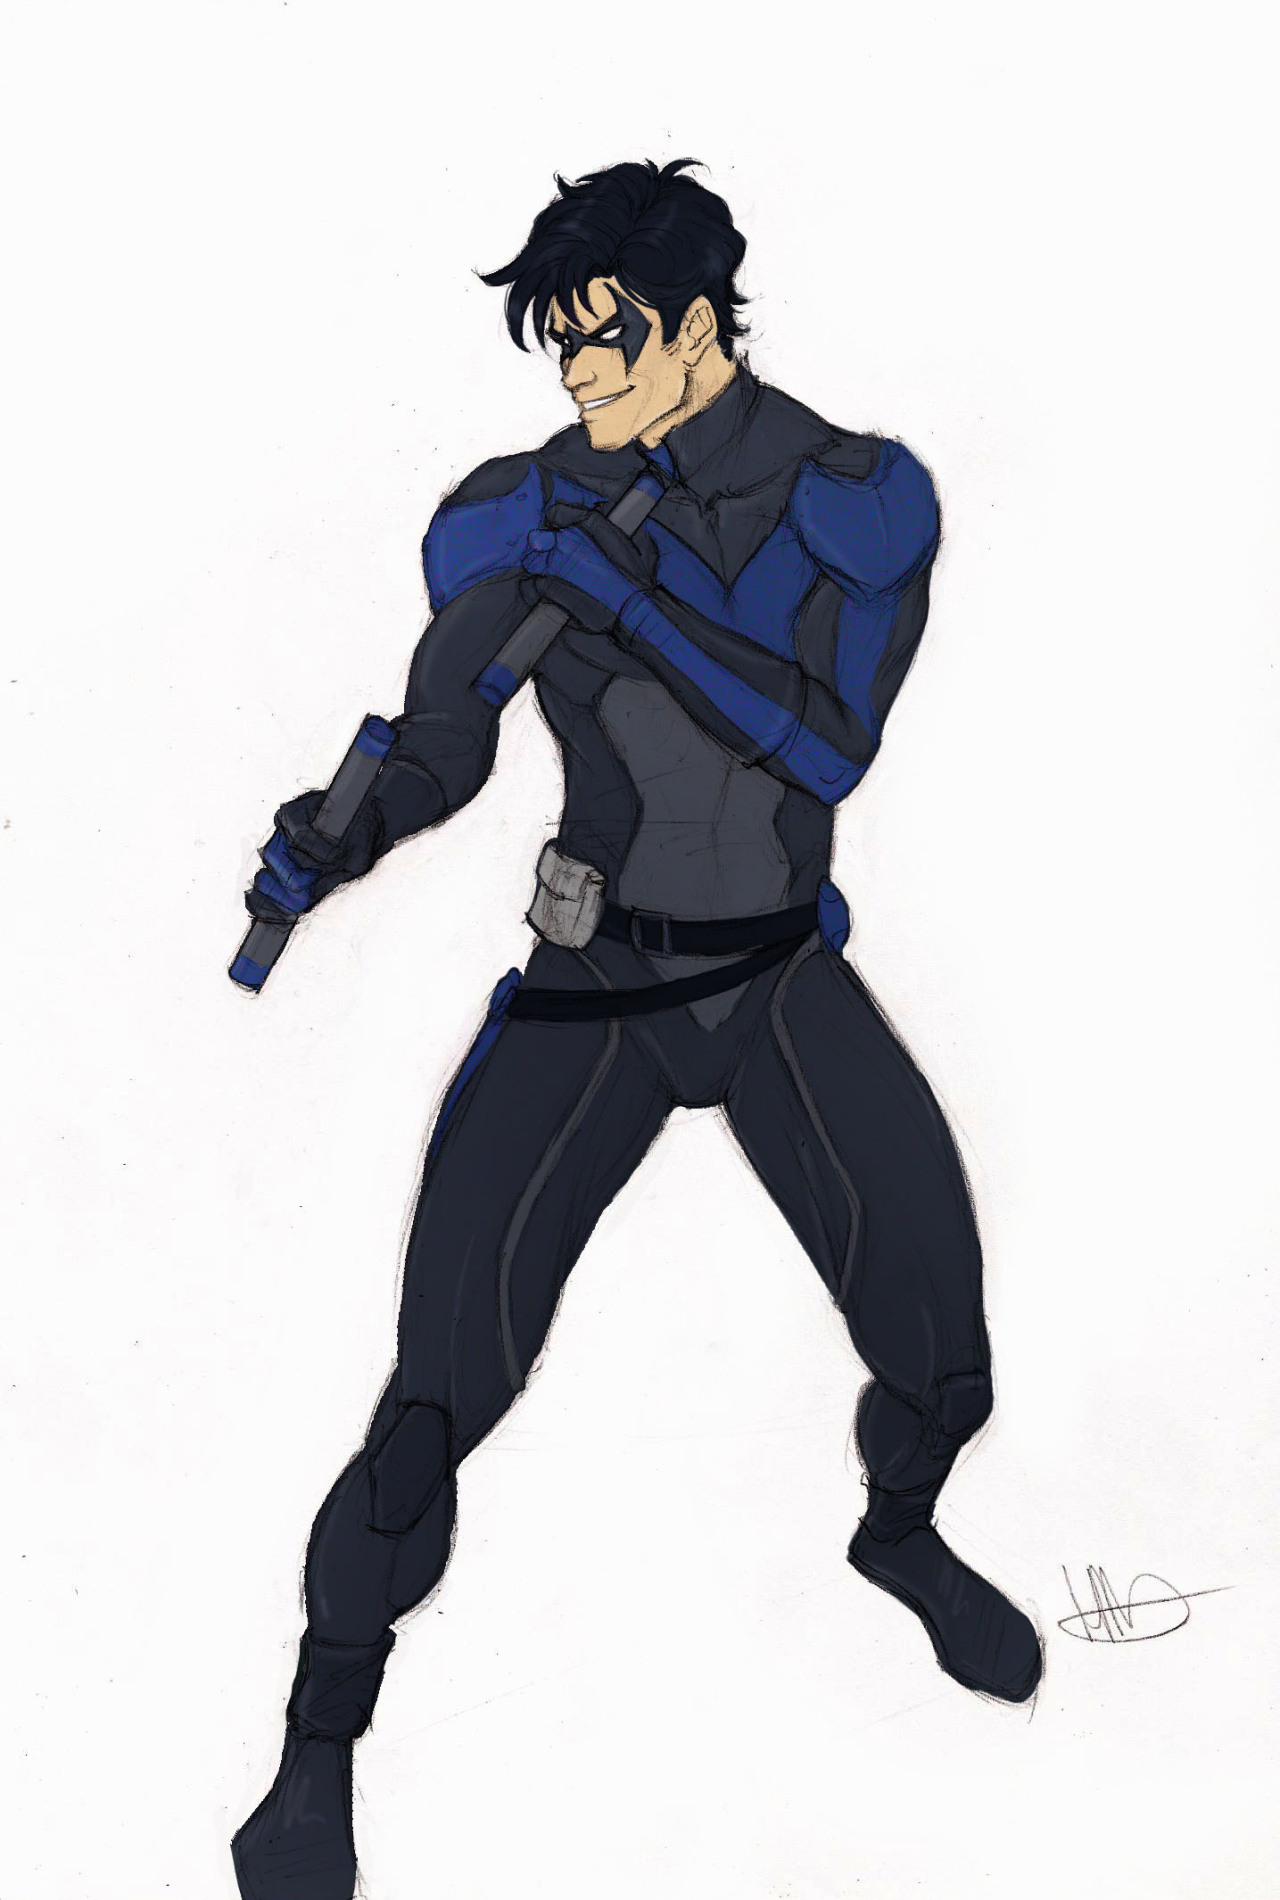 mechanicalmisha:  A quick color of the Nightwing sketch while I wait for my coffee.